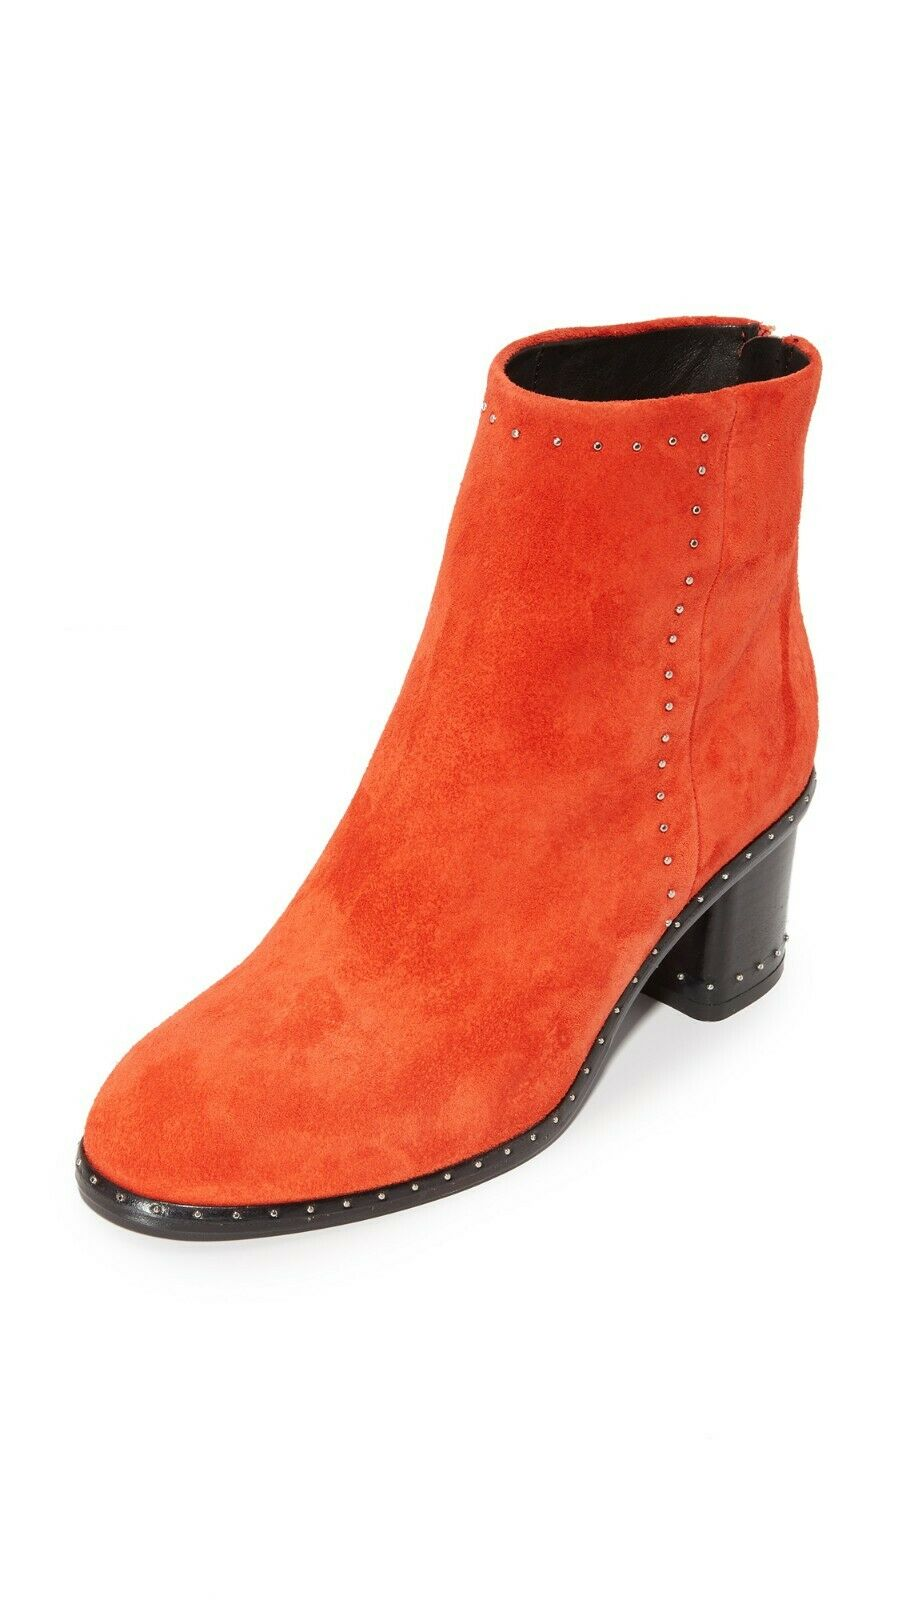 NIB RAG&BONE RED SUEDE WILLOW STUDDED BACK ZIP ANKLE BOOTS 36.5 US 6.5 ITALY